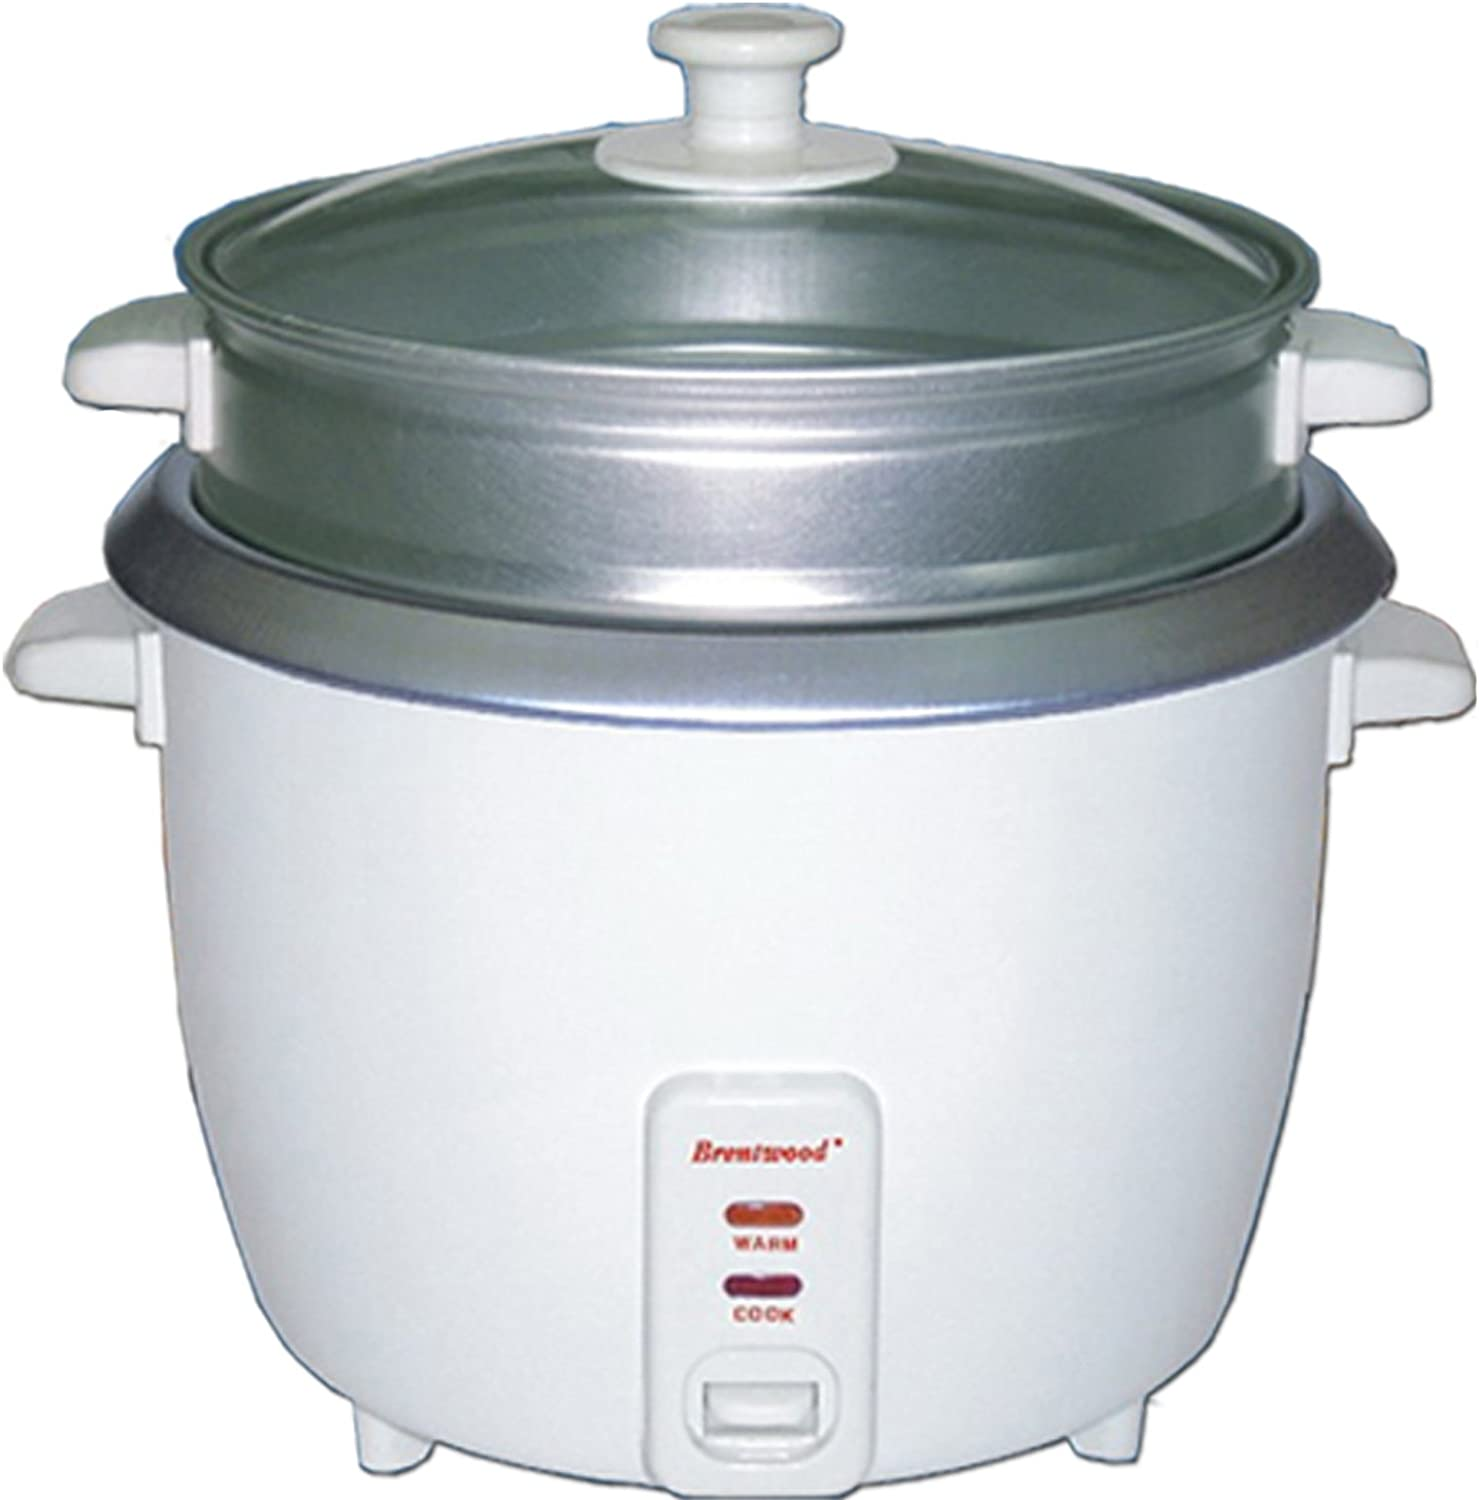 Brentwood TS-700S Rice Cooker, 4 Cups, White